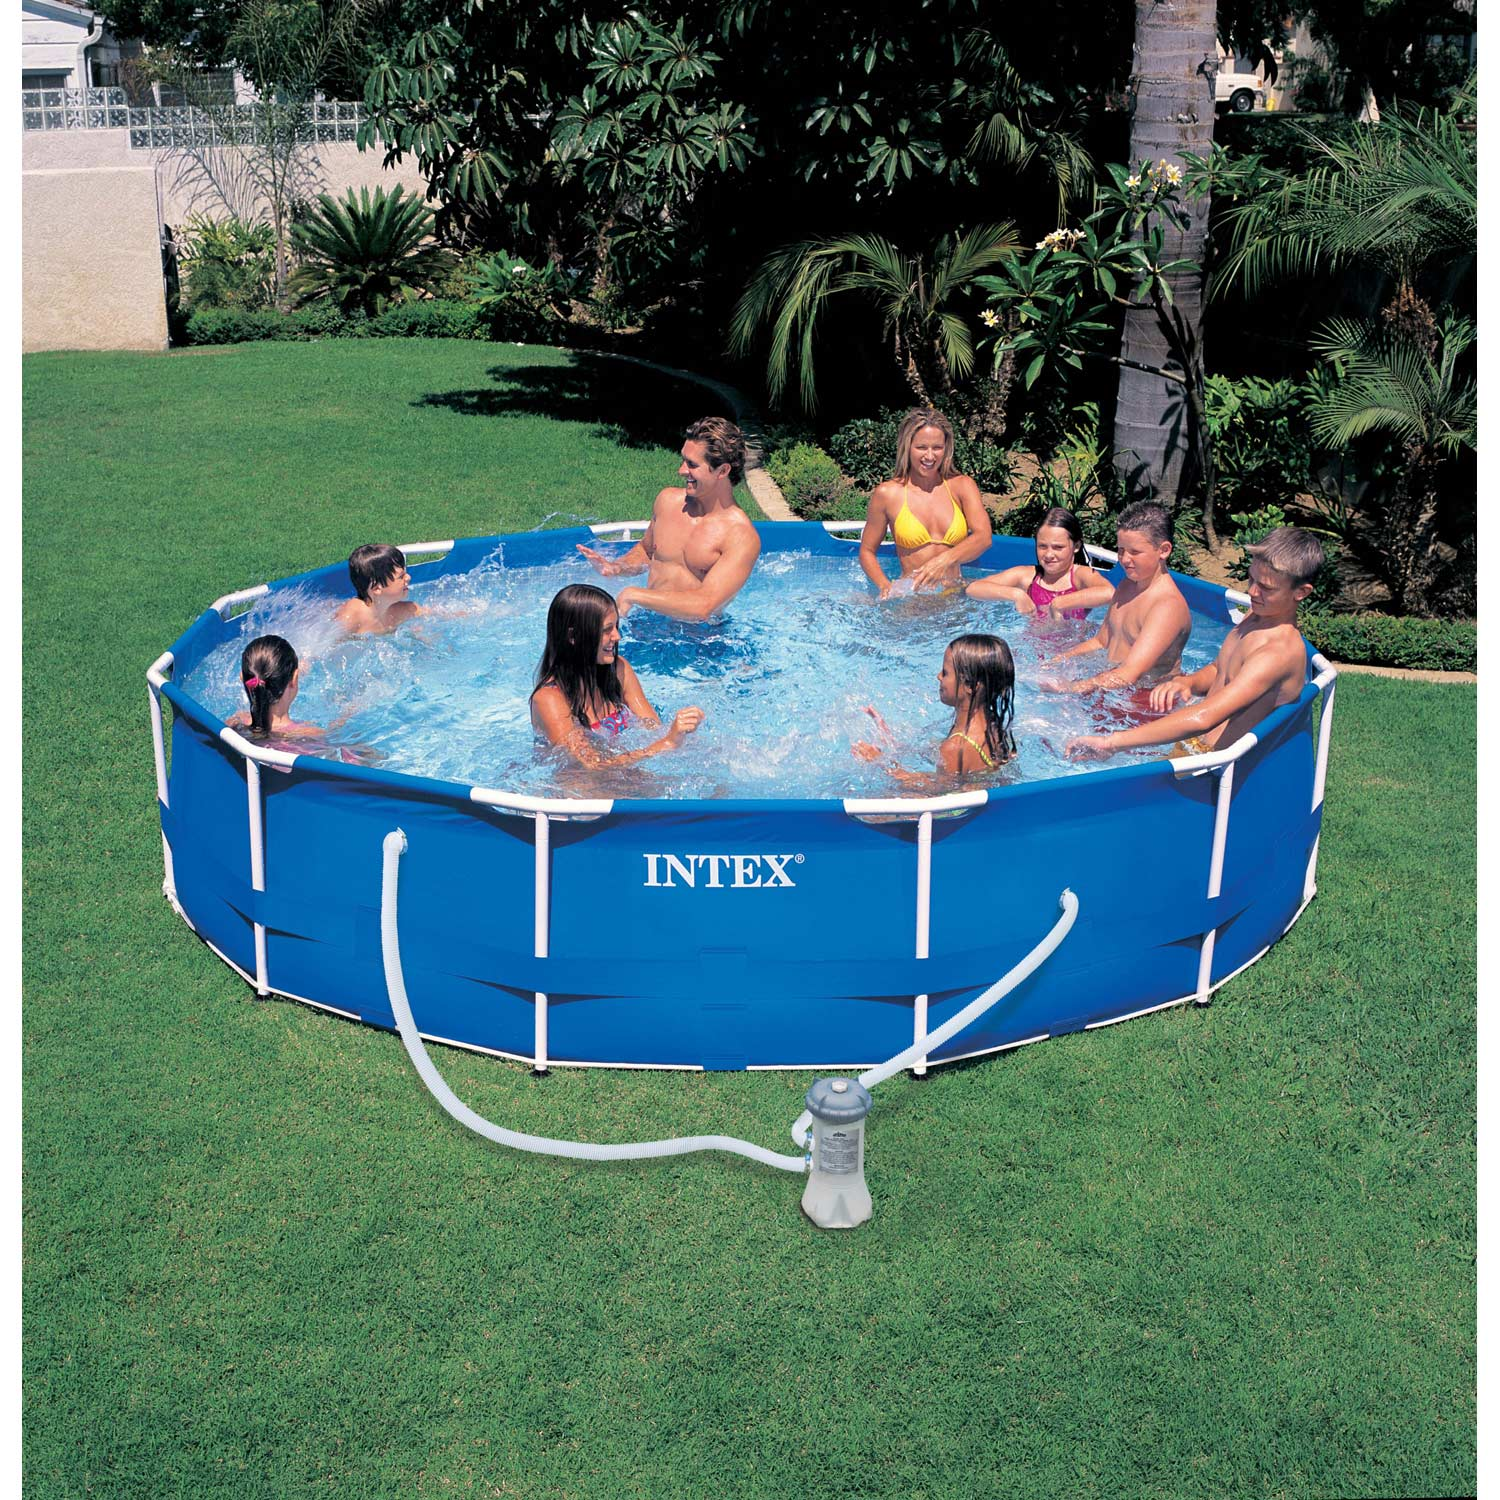 Piscine hors sol autoportante tubulaire metal frame intex for Piscine hors sol enterrable